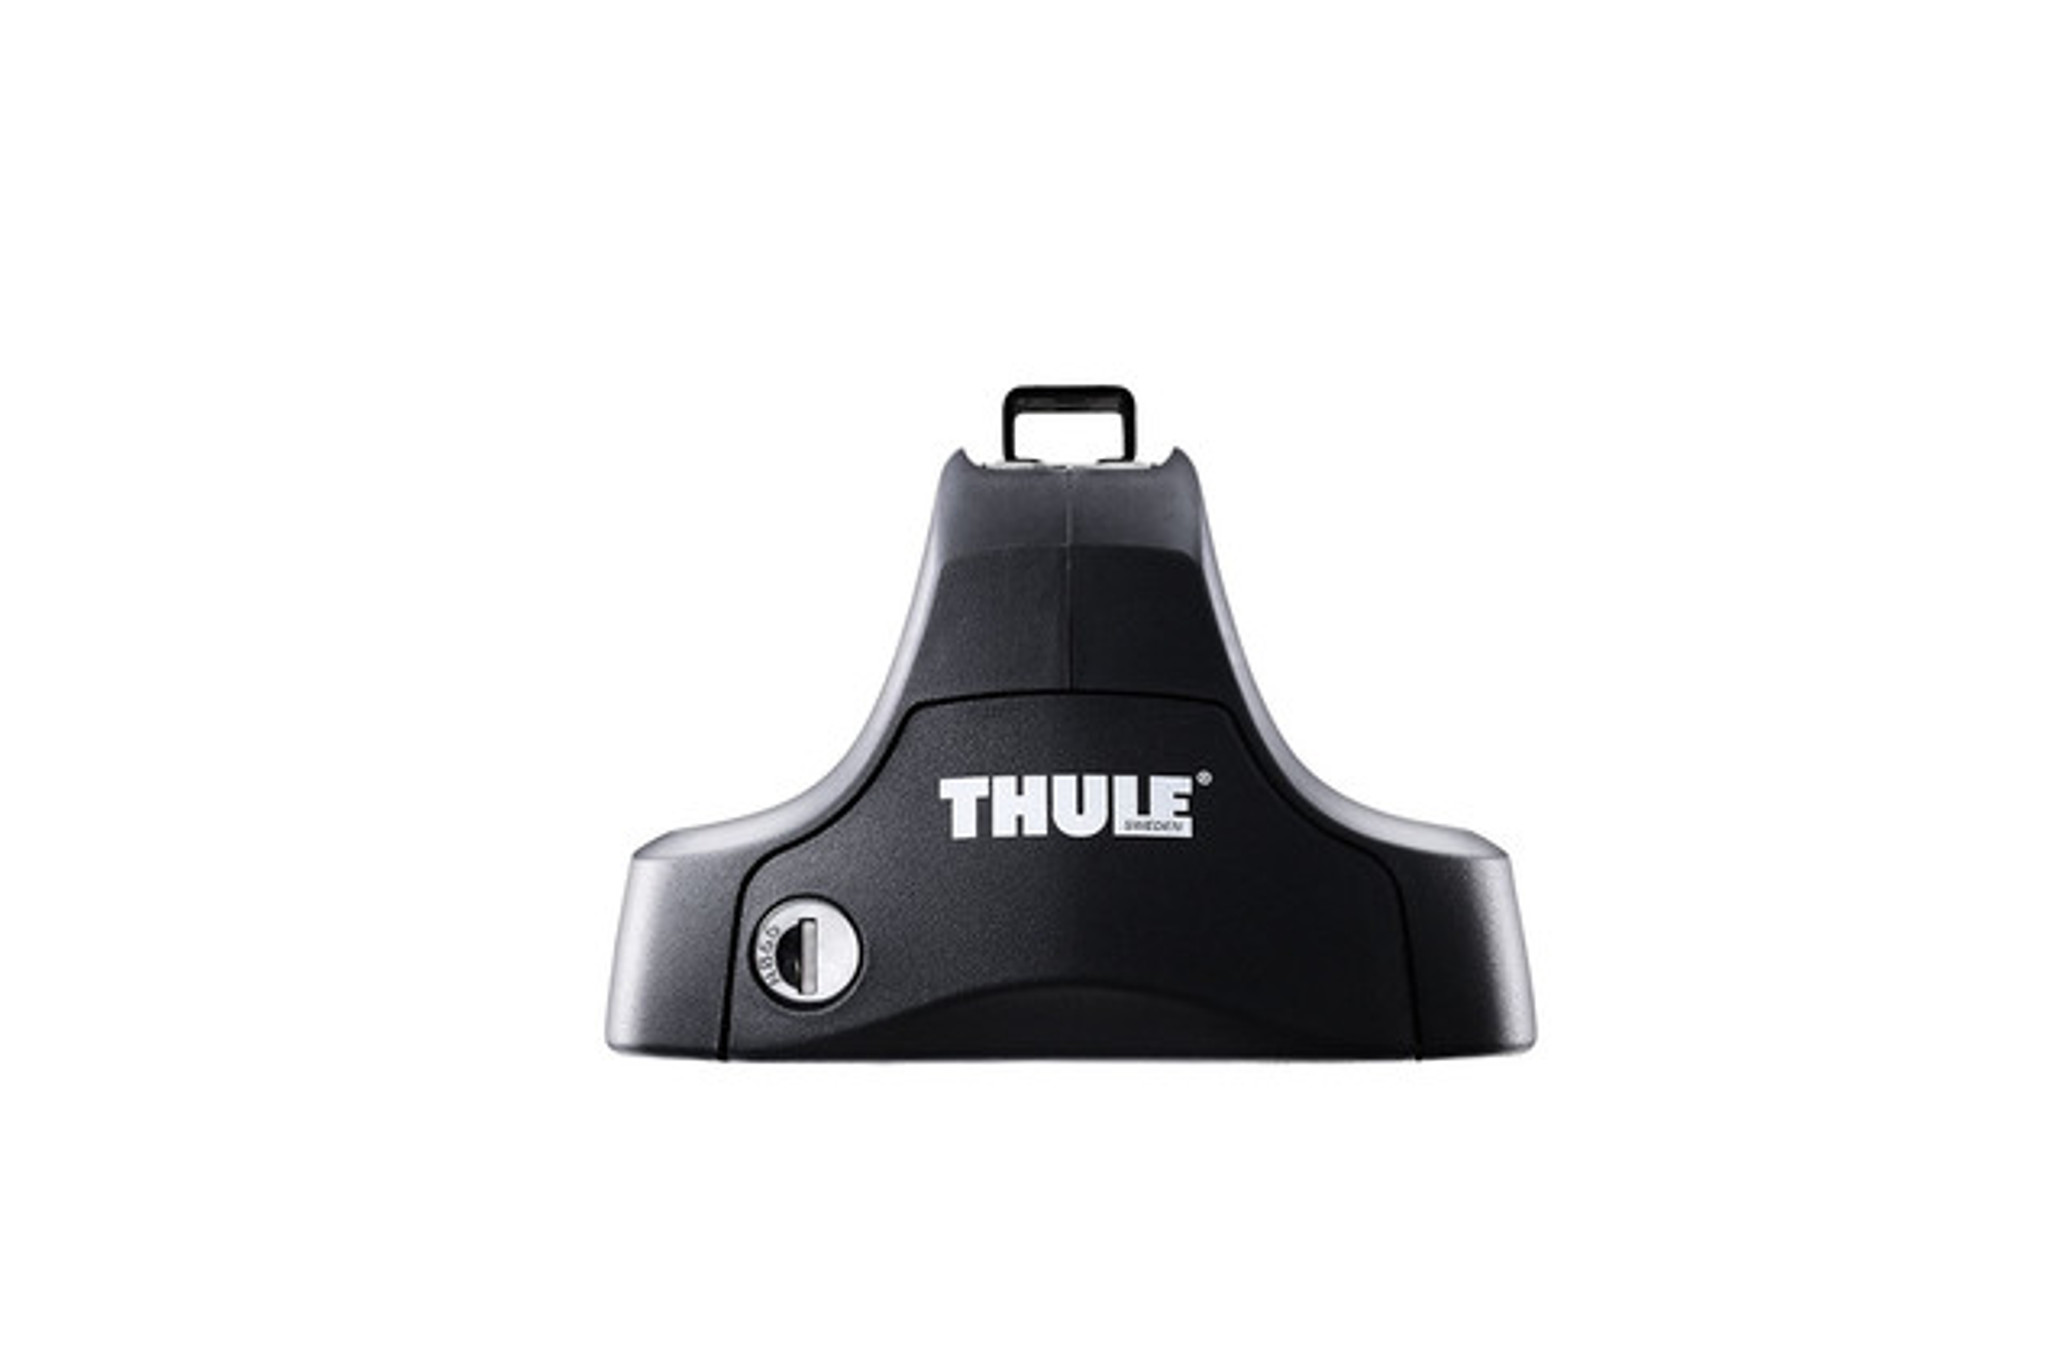 Thule Roof Rack Replacement Traverse AcuTight Tool 7522352002